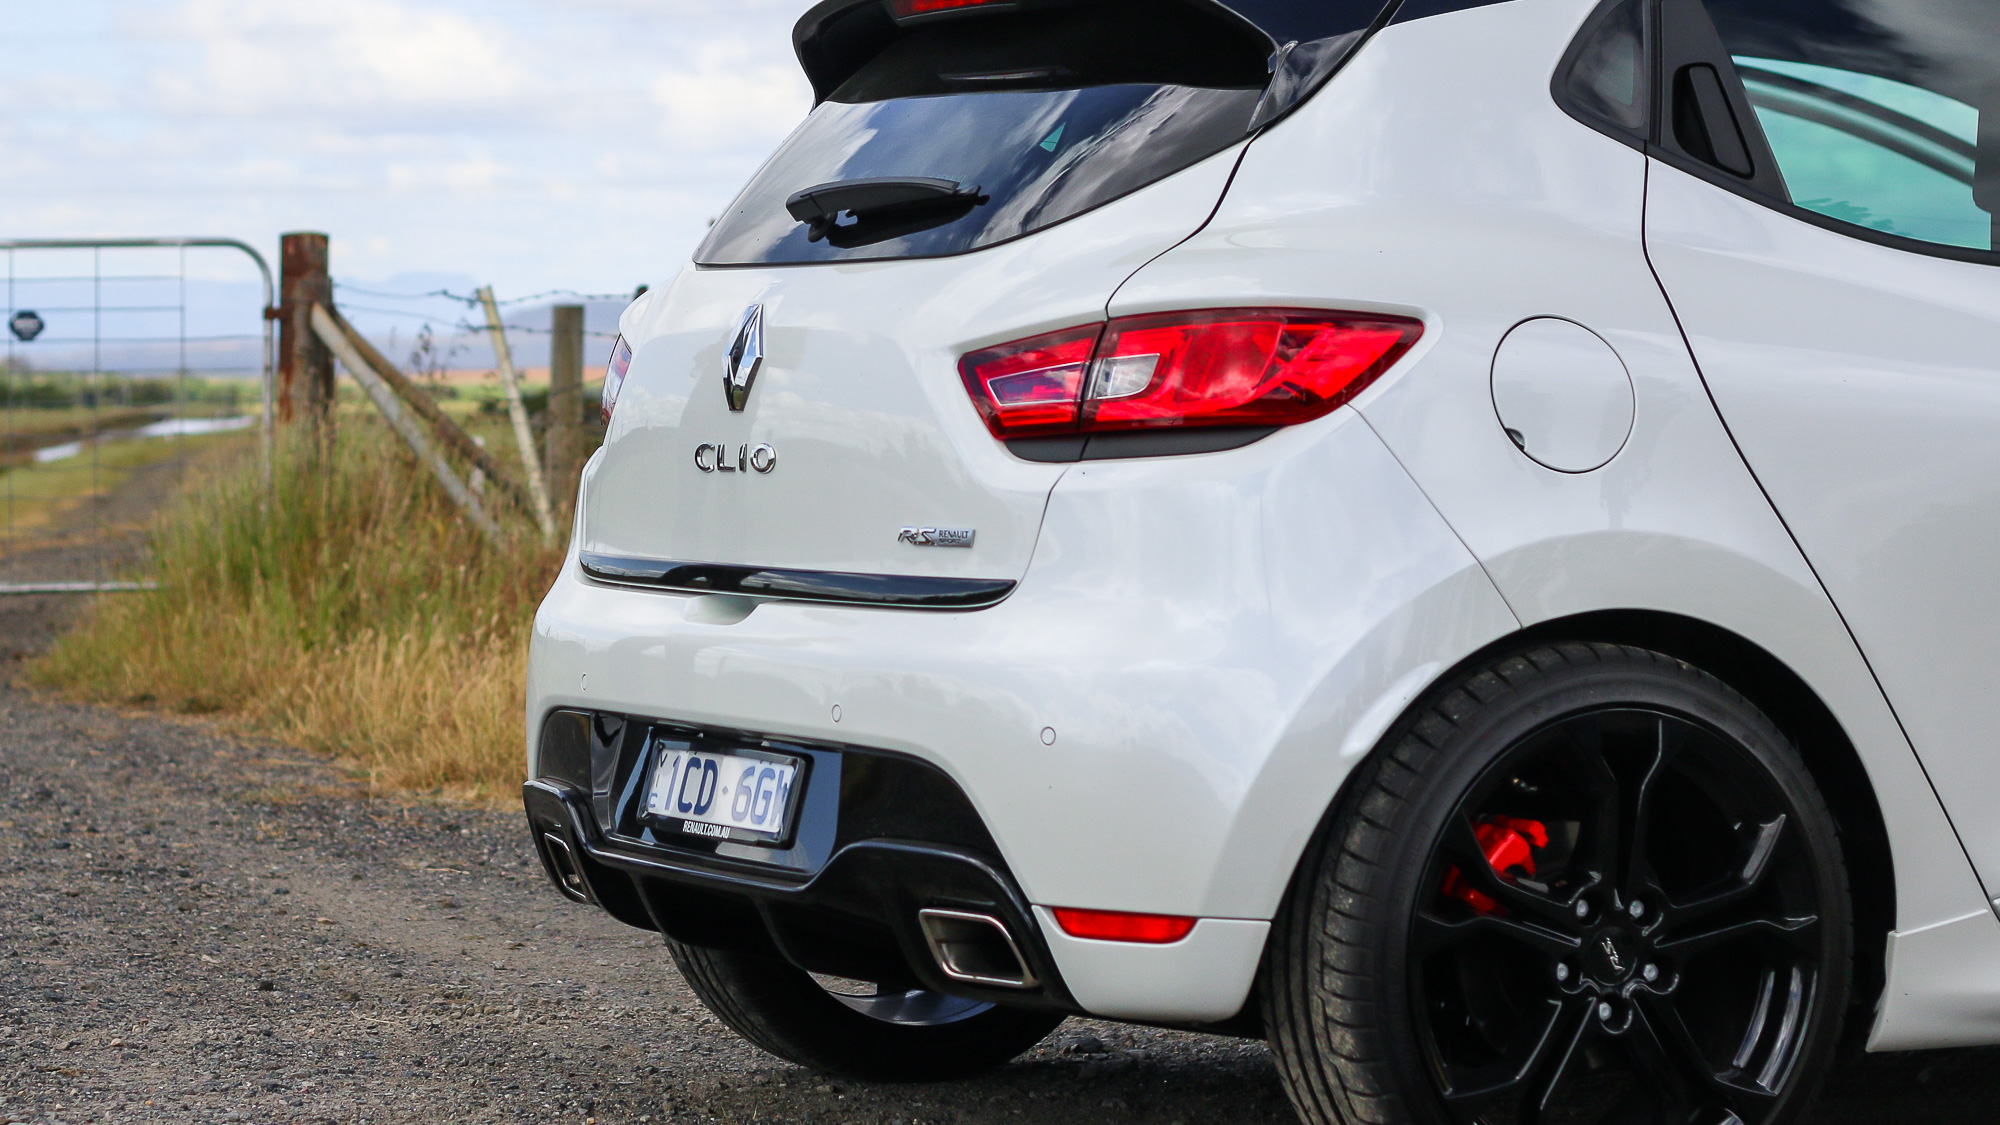 2015 Renault Clio RS Monaco GP Review : Quick drive | CarAdvice